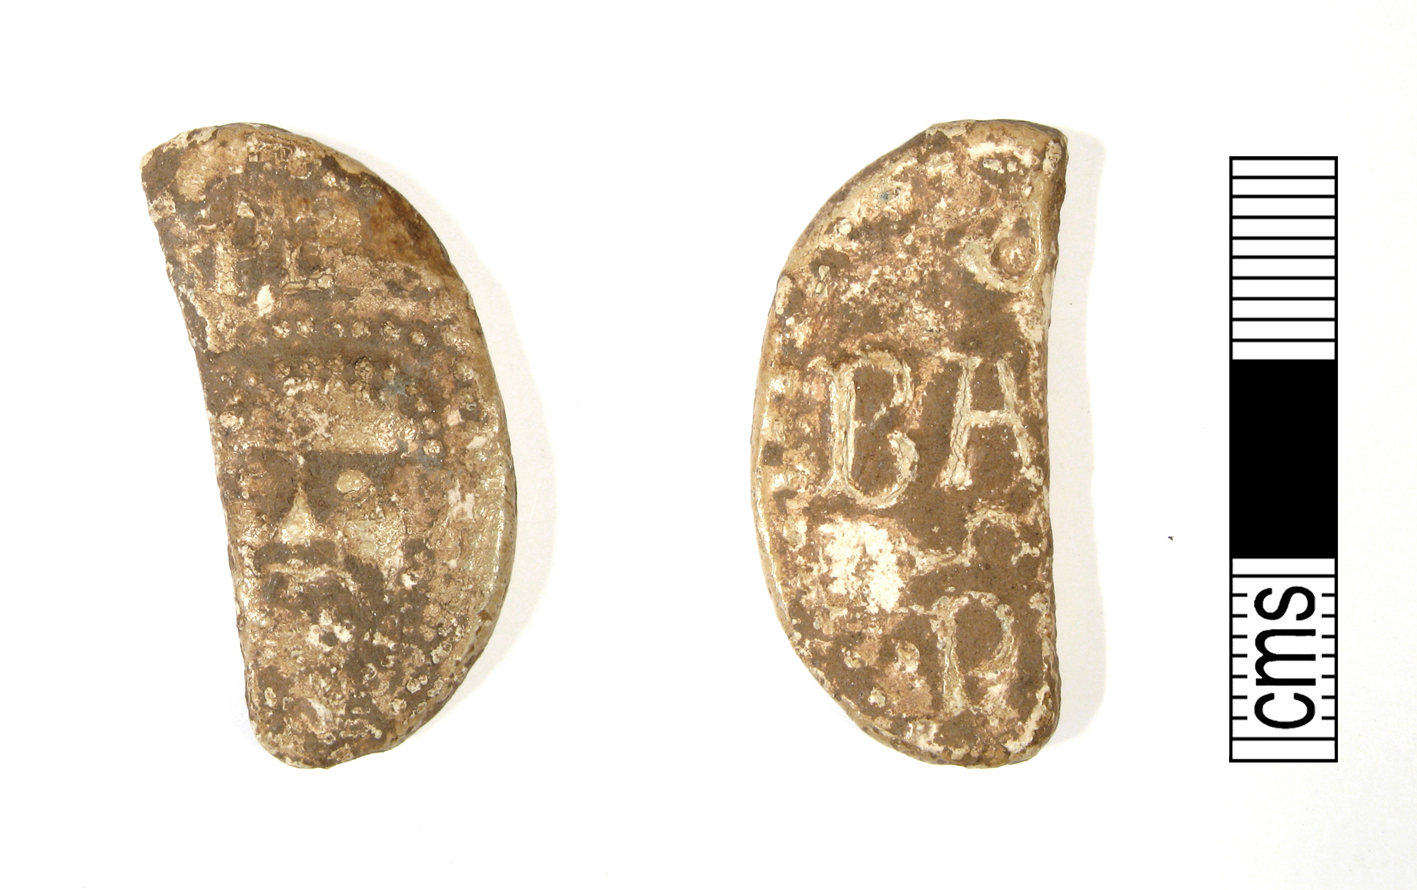 WMID-AC0922, an incomplete papal bulla of either Pope Urban III or IV.